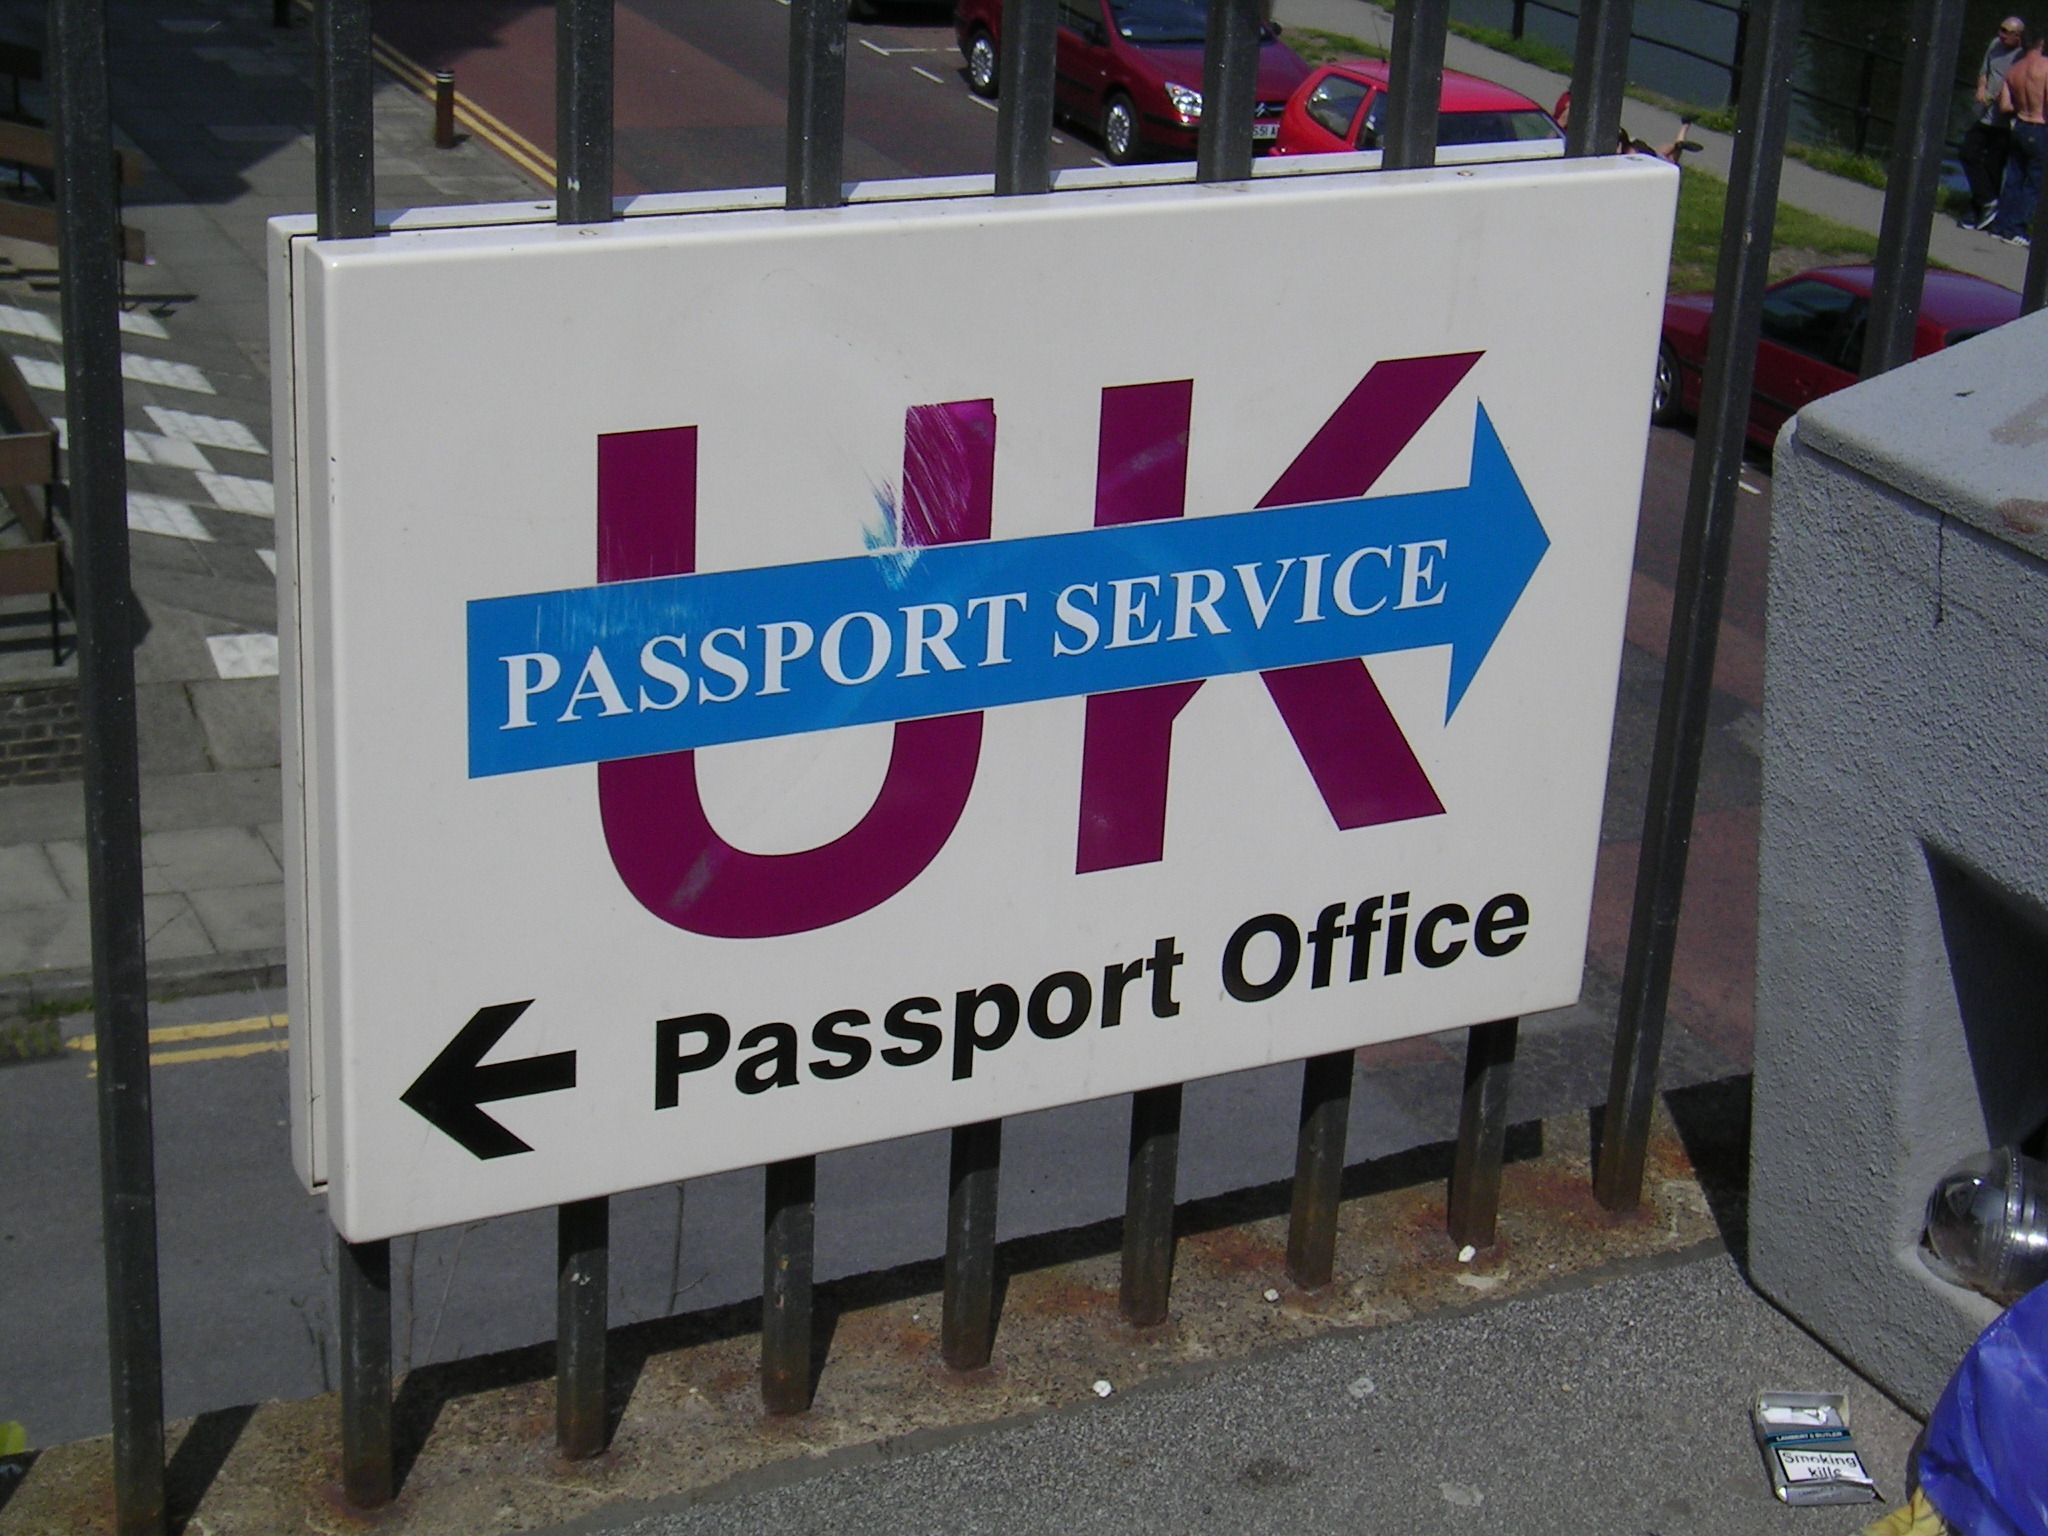 Httpukcityportal uk passport office uk news passport expediting service for new passports renewal lost or stolen passports for adults and children falaconquin